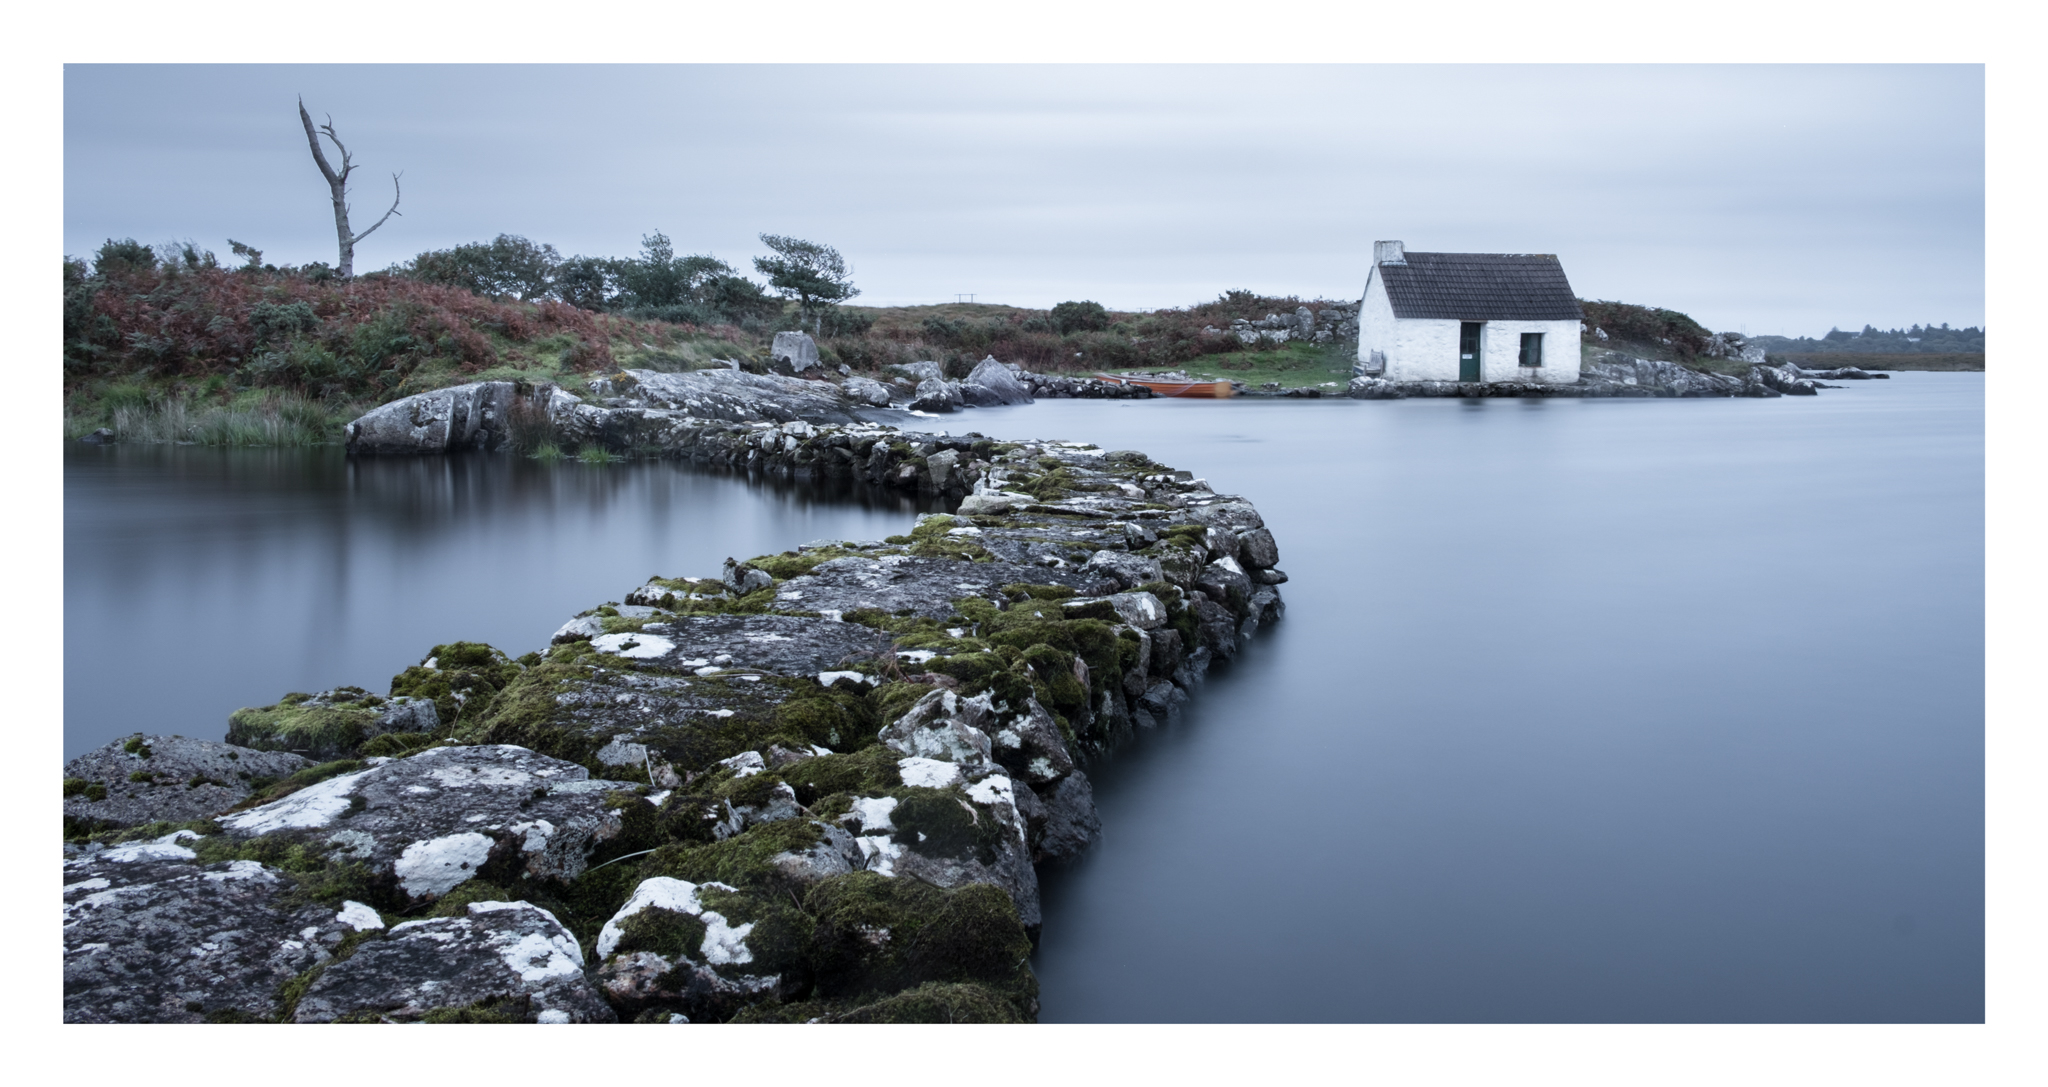 Tried a few different angles to use a wider field of view, Screebe Fishing hut